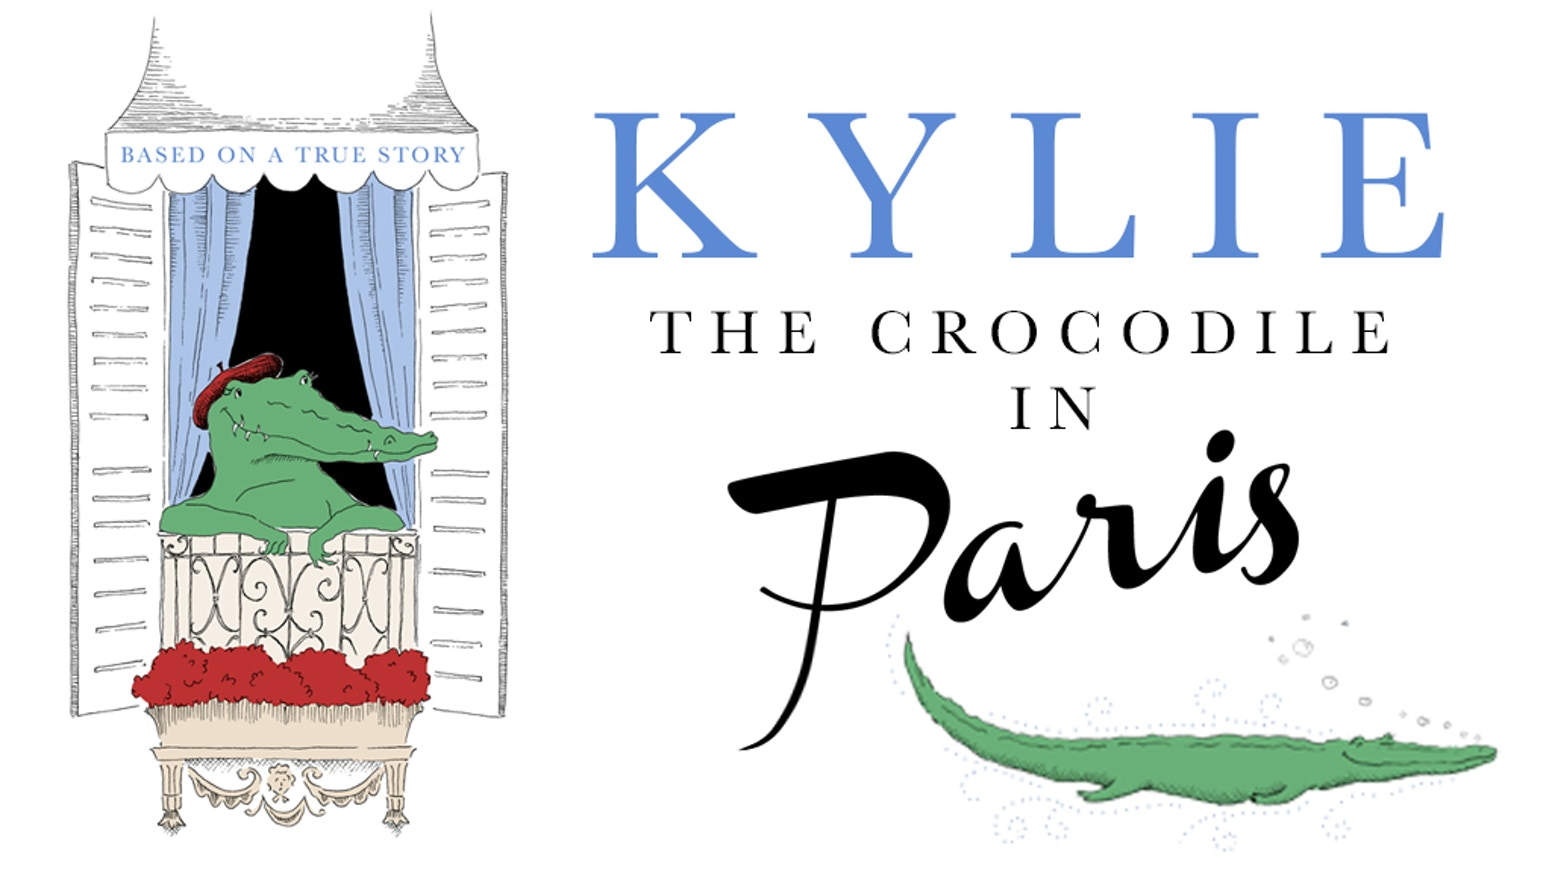 A children's book about a friendly Paris crocodile...Thanks to all who contributed! If you missed the Kickstarter campaign, order your copy on the green button below!